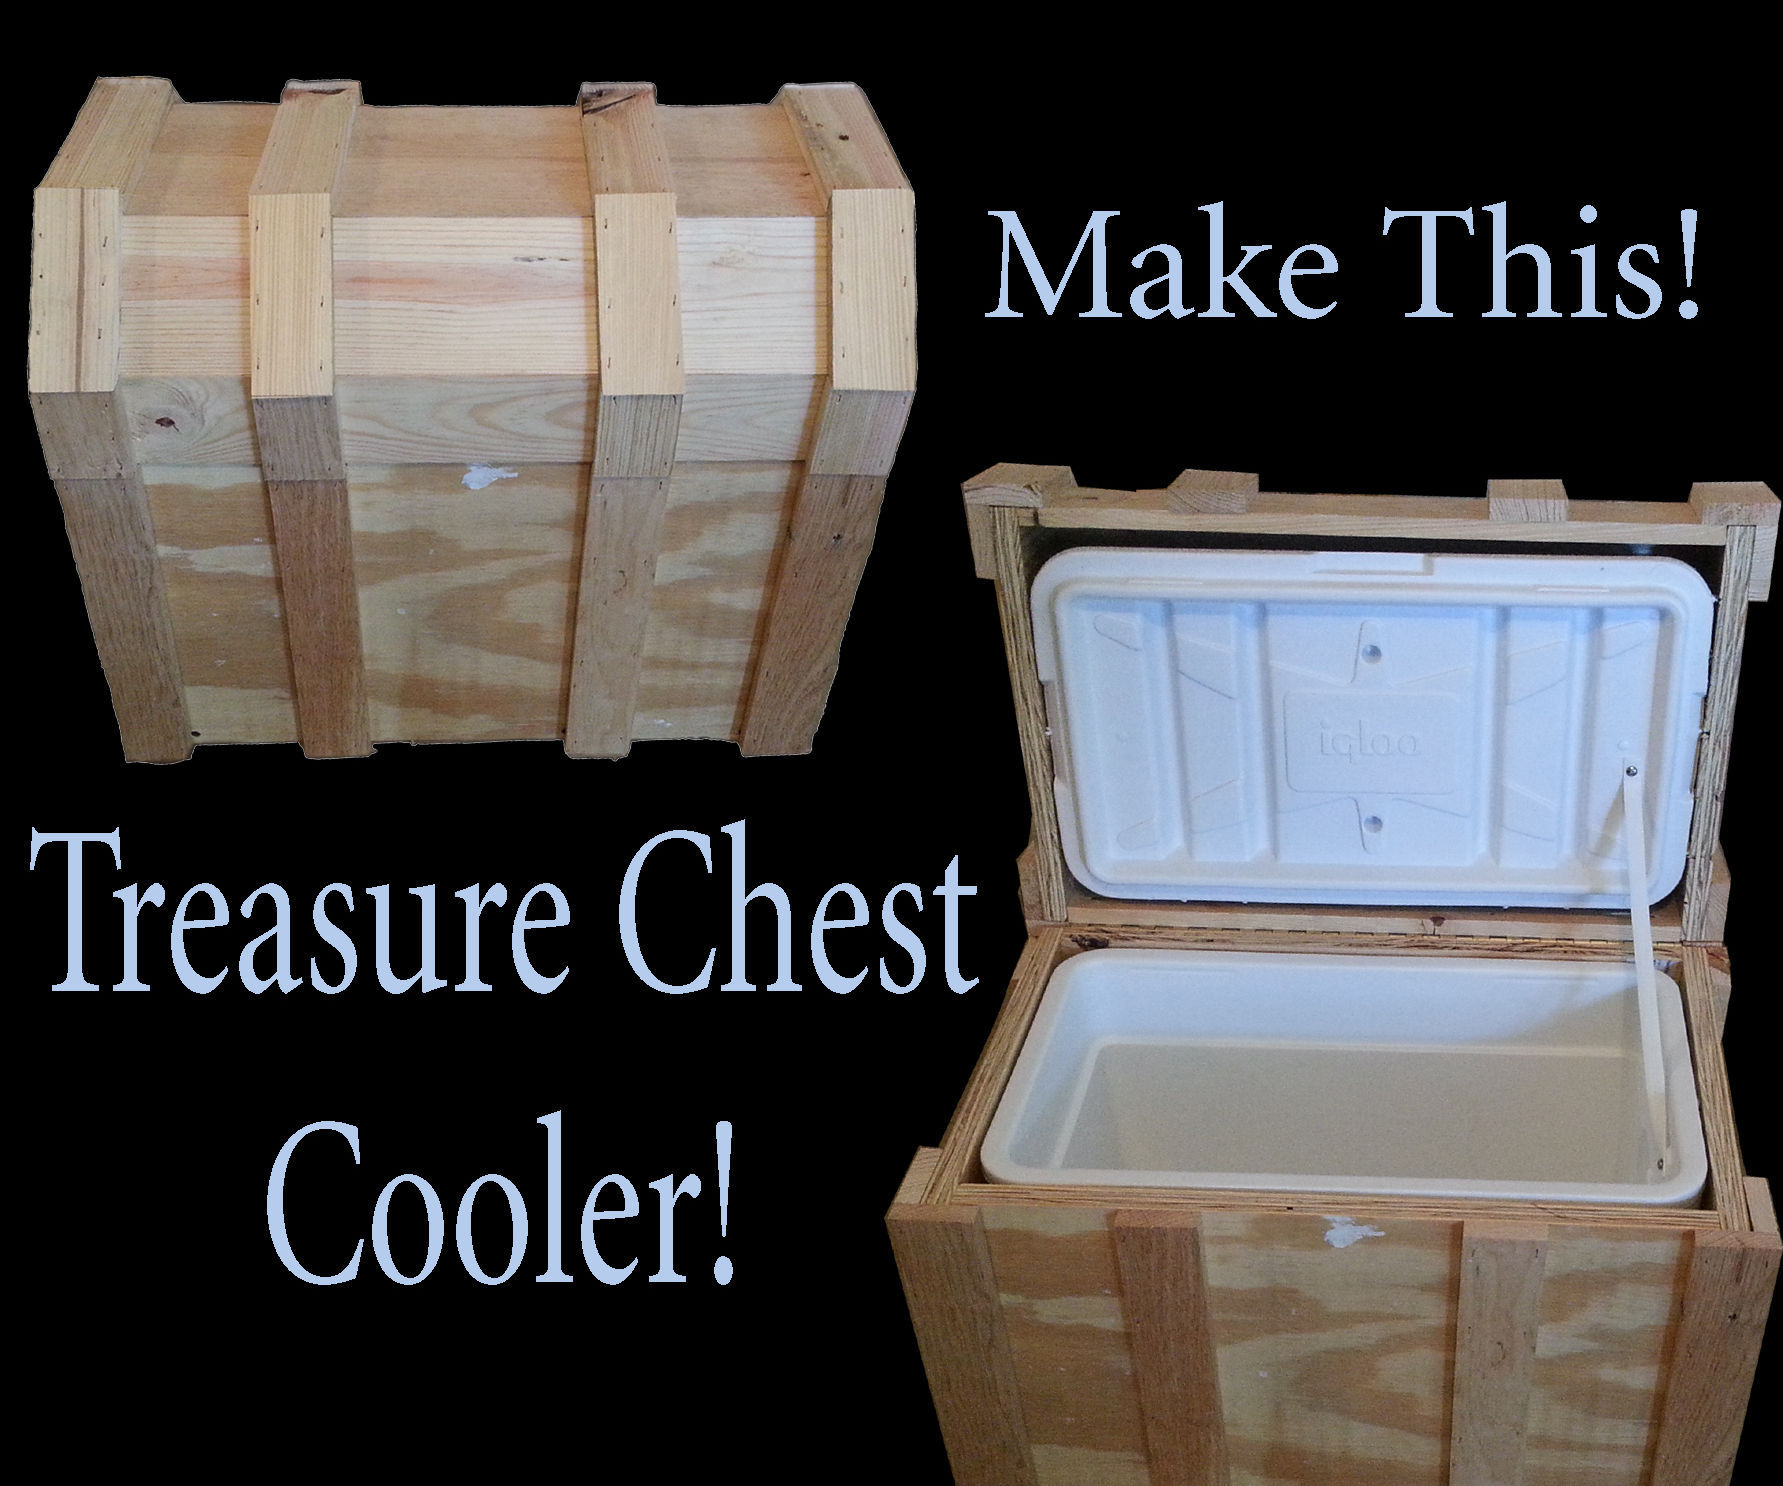 Pirate Chest Cooler Box